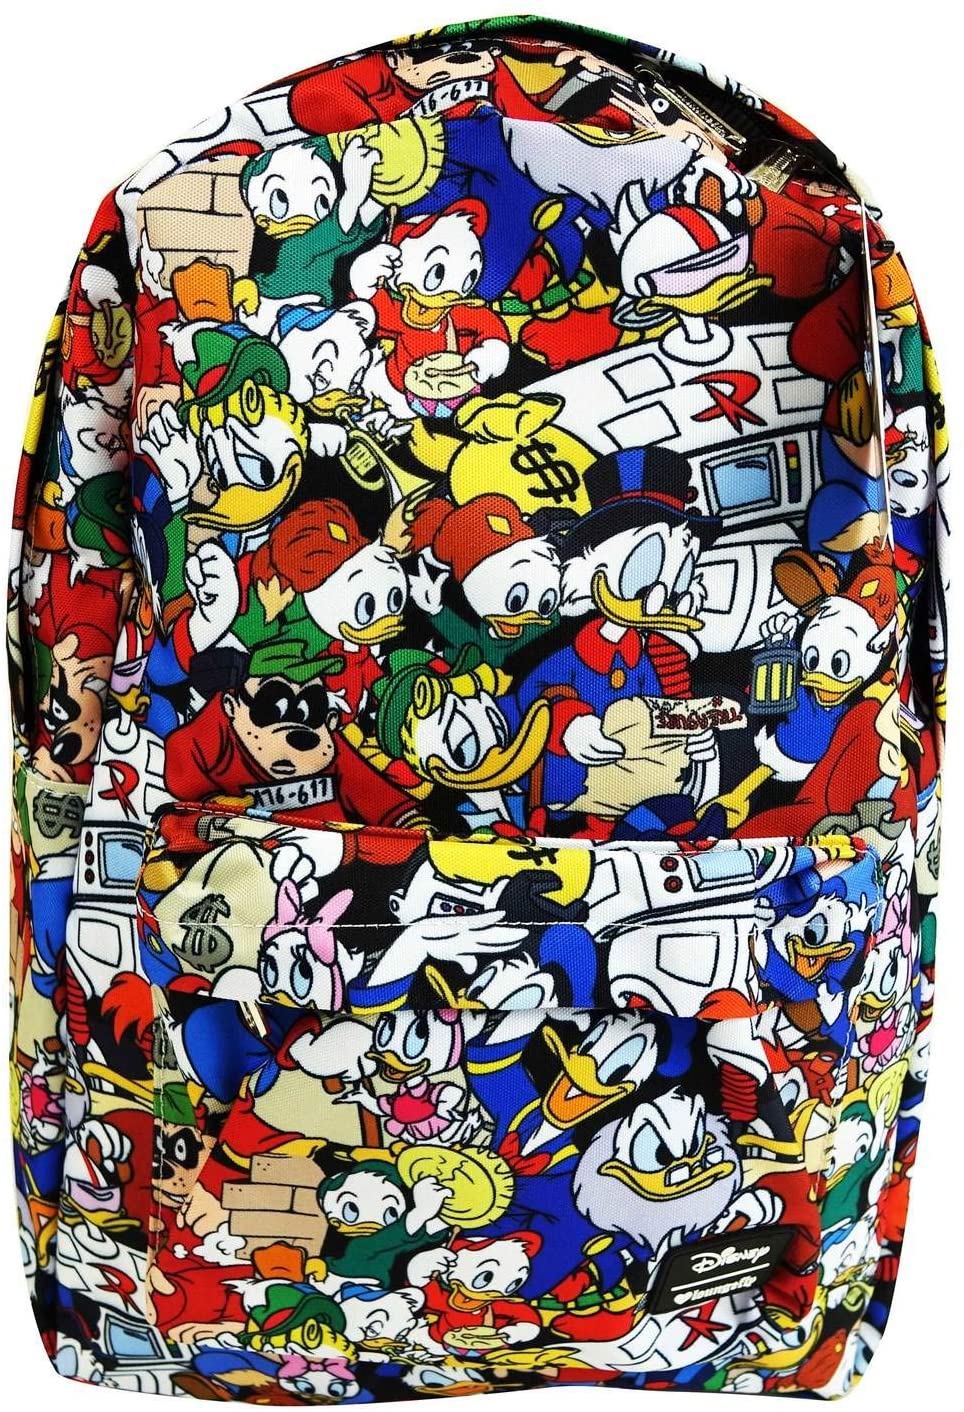 Loungefly Duck Tales All Over Print Backpack Standard